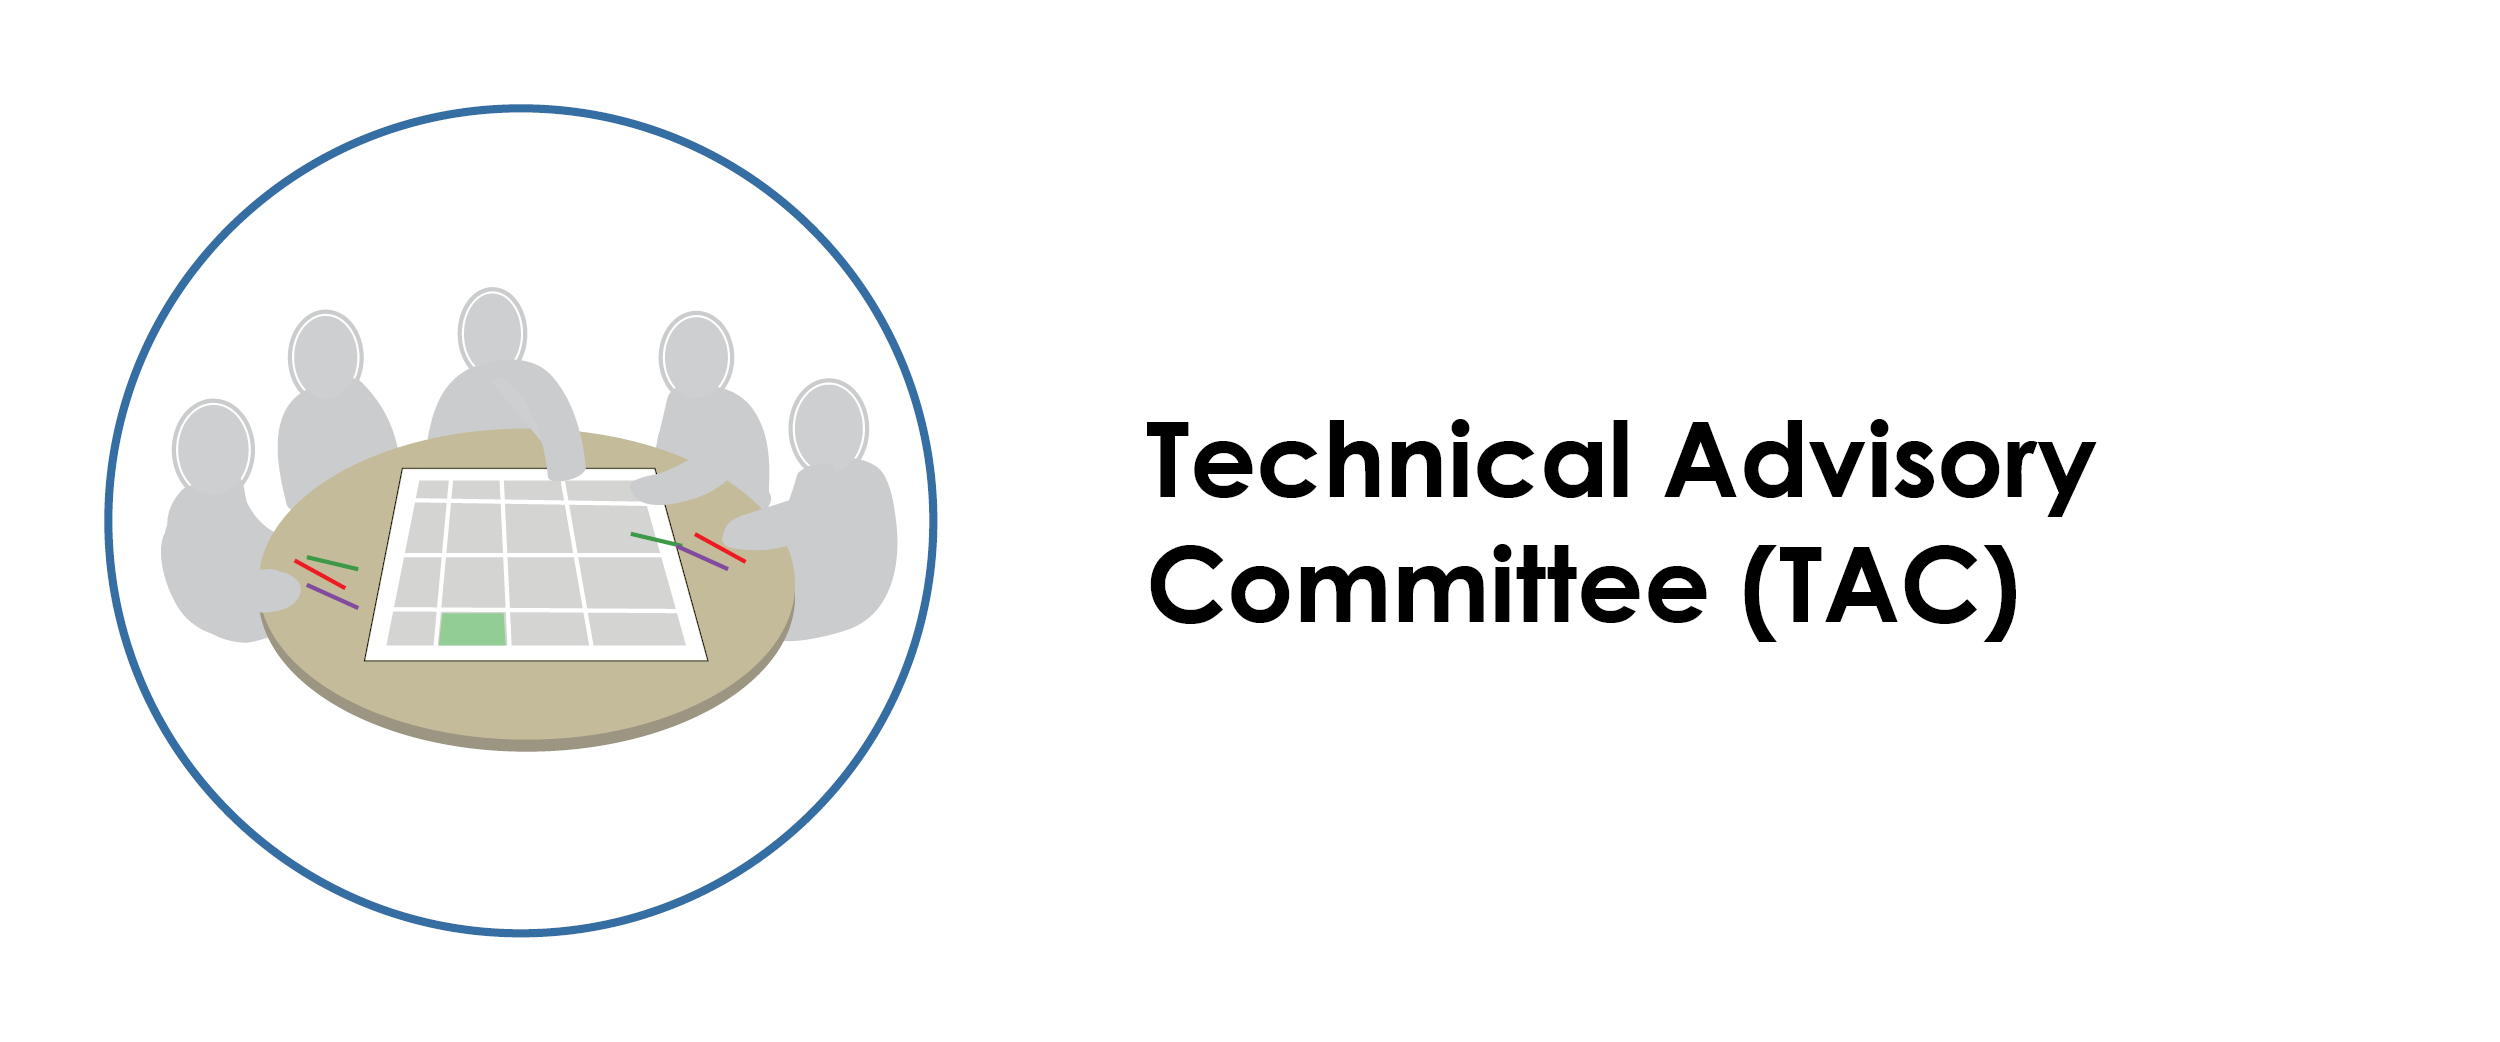 Technical Advisory Committee. Click on image to learn more.